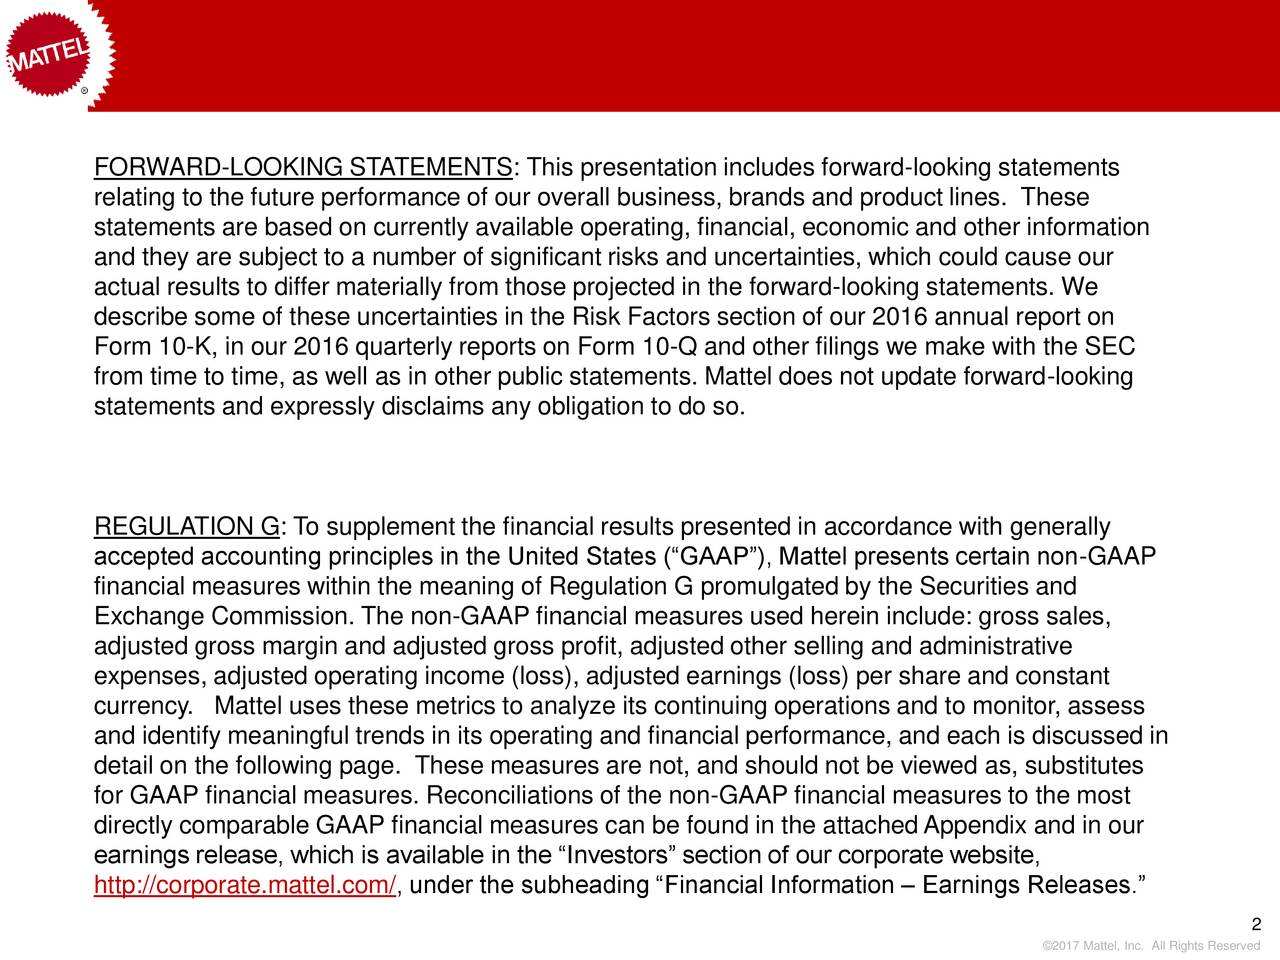 relating to the future performance of our overall business, brands and product lines. These statements are based on currently available operating, financial, economic and other information and they are subject to a number of significant risks and uncertainties, which could cause our actual results to differ materially from those projected in the forward-looking statements. We describe some of these uncertainties in the Risk Factors section of our 2016 annual report on Form 10-K, in our 2016 quarterly reports on Form 10-Q and other filings we make with the SEC from time to time, as well as in other public statements. Mattel does not update forward-looking statements and expressly disclaims any obligation to do so. REGULATION G: To supplement the financial results presented in accordance with generally accepted accounting principles in the United States (GAAP), Mattel presents certain non-GAAP financial measures within the meaning of Regulation G promulgated by the Securities and Exchange Commission. The non-GAAP financial measures used herein include: gross sales, adjusted gross margin and adjusted gross profit, adjusted other selling and administrative expenses, adjusted operating income (loss), adjusted earnings (loss) per share and constant currency. Mattel uses these metrics to analyze its continuing operations and to monitor, assess and identify meaningful trends in its operating and financial performance, and each is discussed in detail on the following page. These measures are not, and should not be viewed as, substitutes for GAAP financial measures. Reconciliations of the non-GAAP financial measures to the most directly comparable GAAP financial measures can be found in the attachedAppendix and in our earnings release, which is available in the Investors section of our corporate website, http://corporate.mattel.com/, under the subheading Financial Information  Earnings Releases. 2